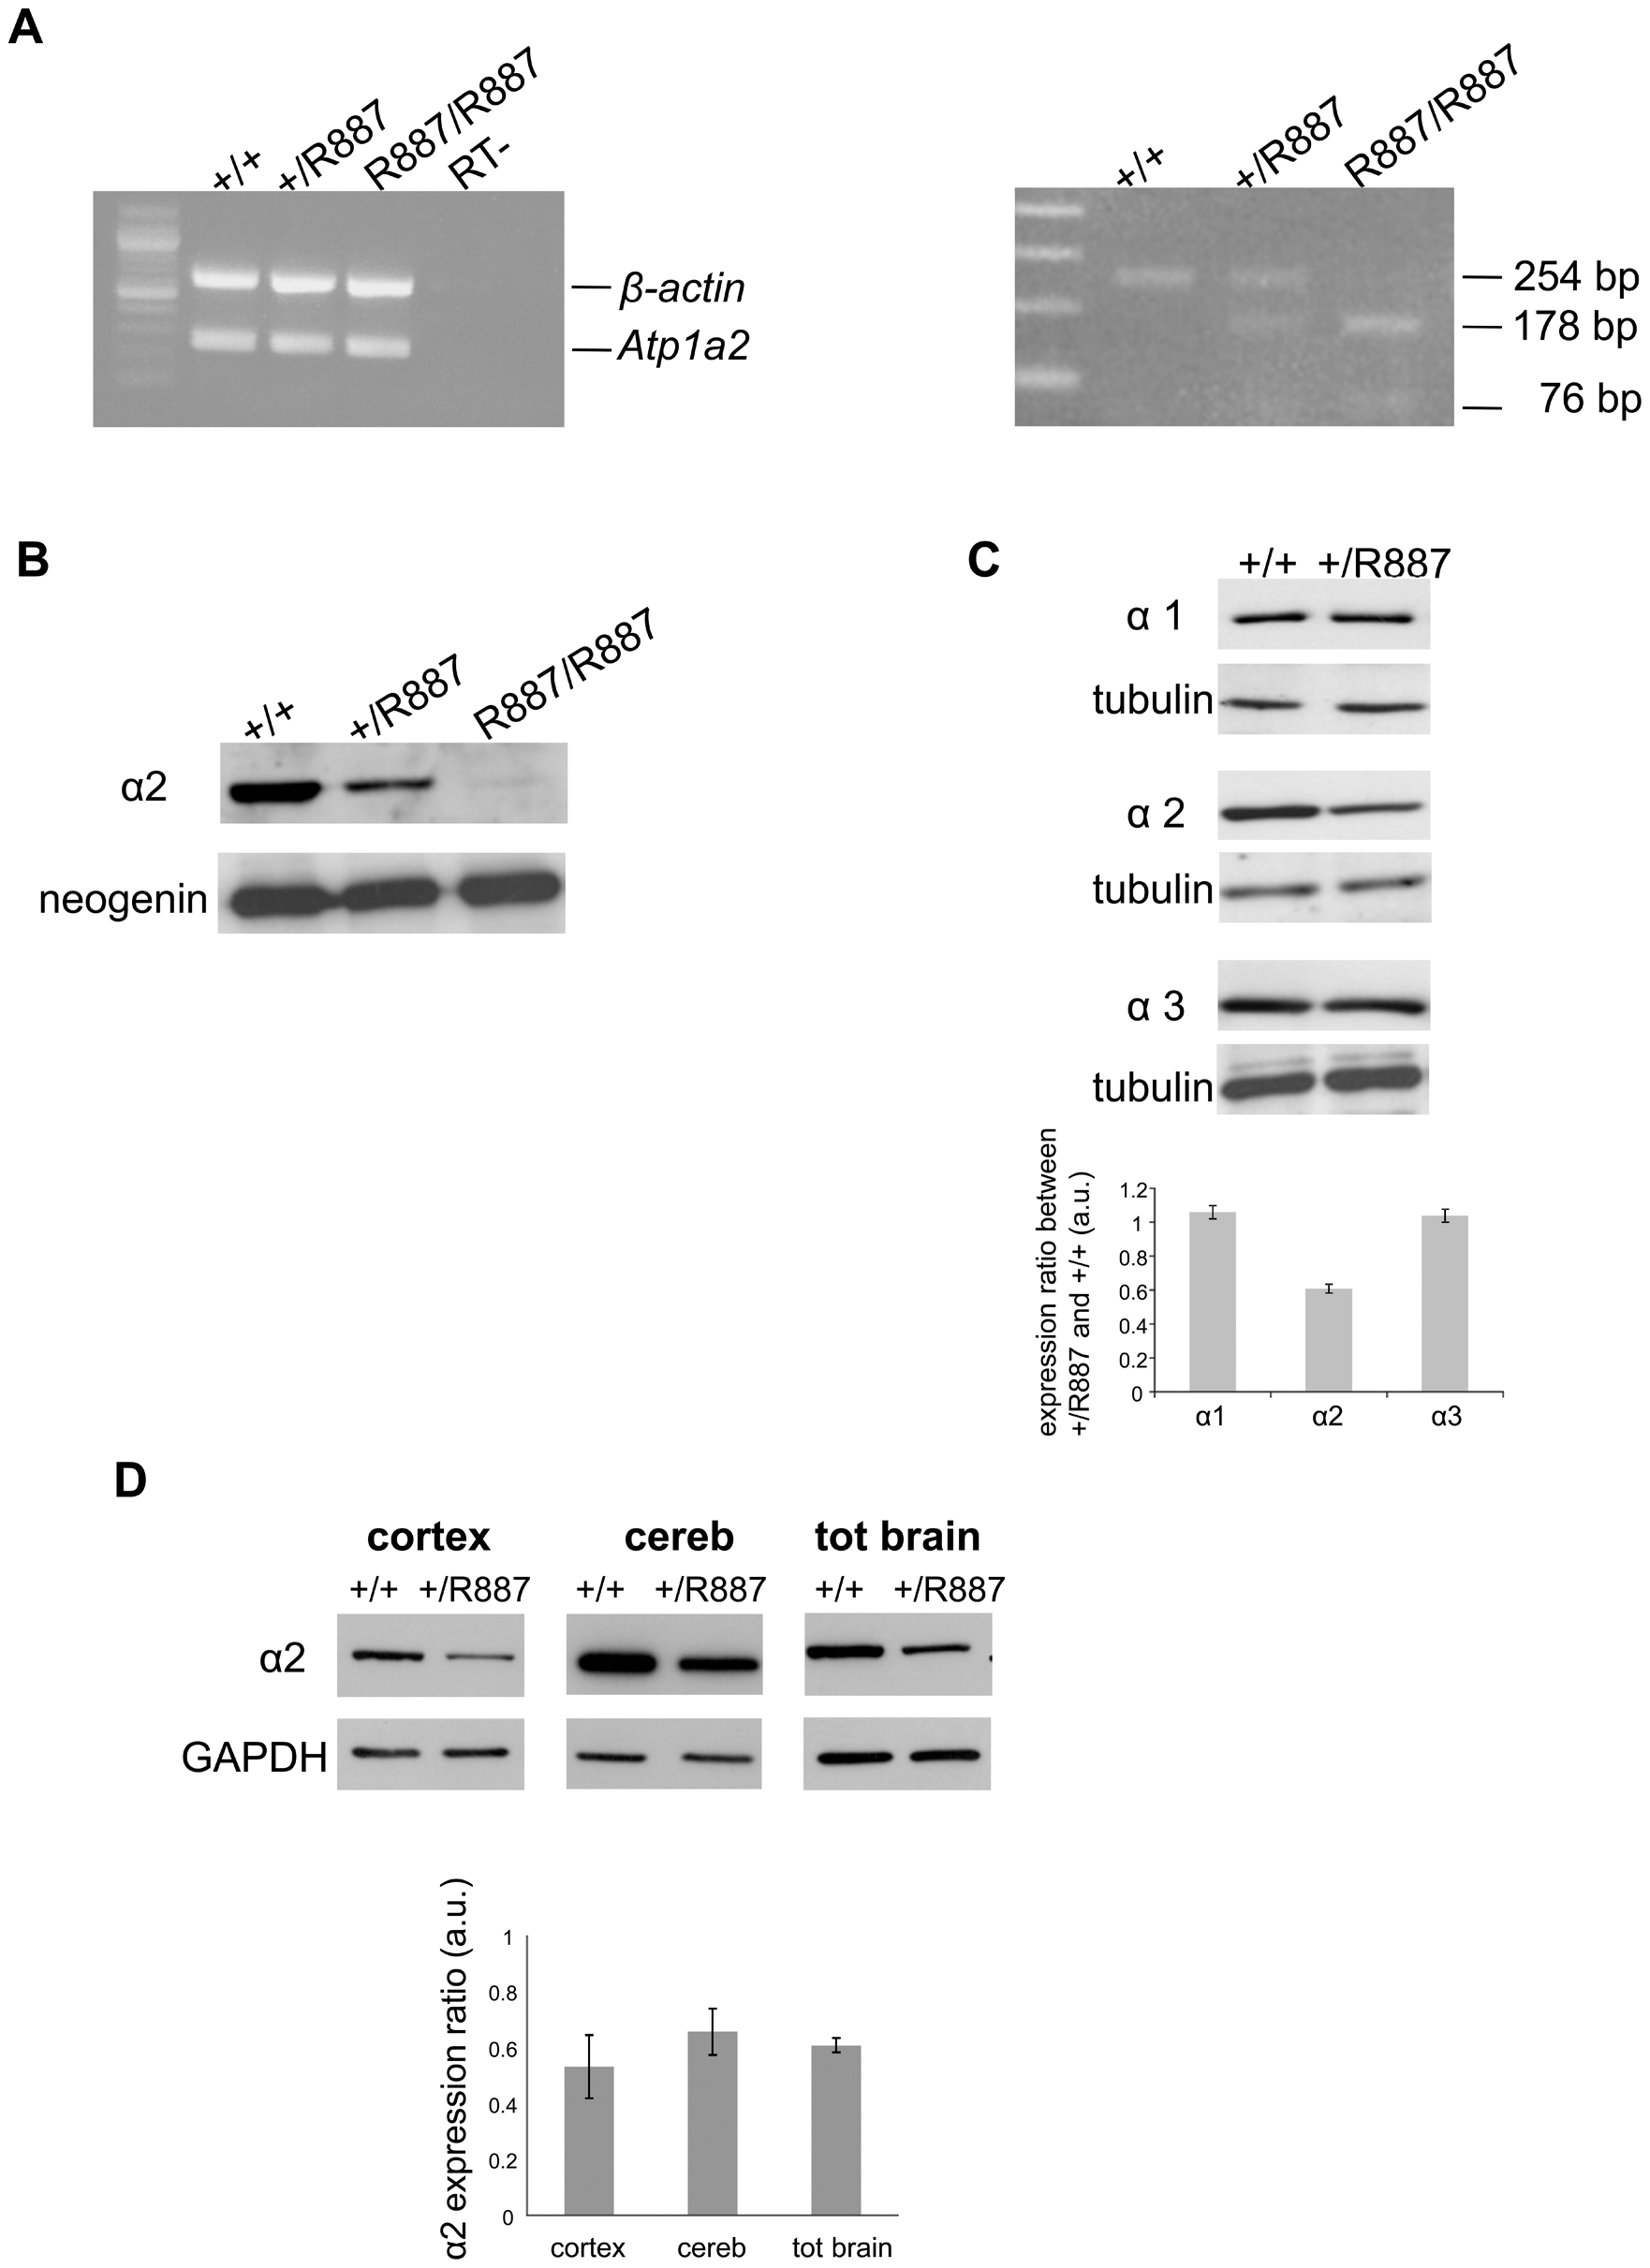 In vivo expression of mutant <i>Atp1a2</i>.